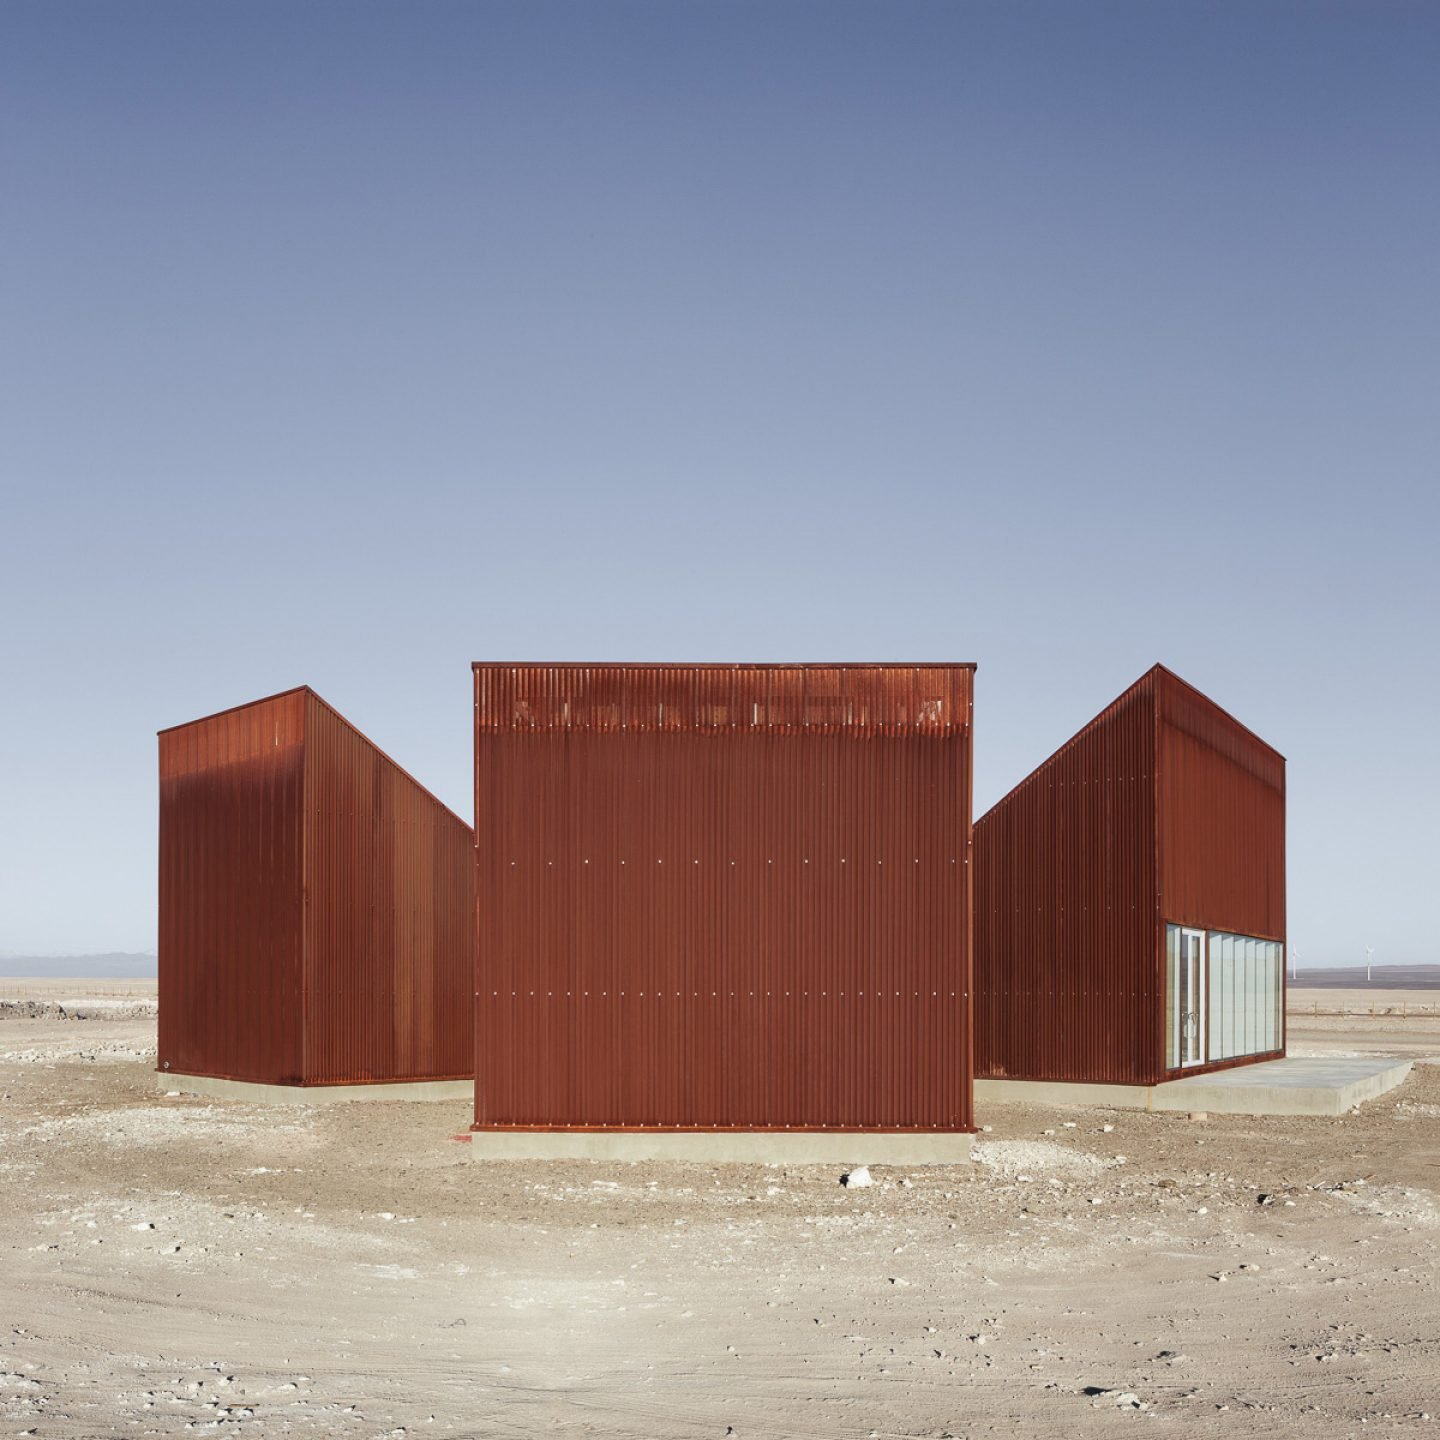 iGNANT-Architecture-Desert-Interpretation-Center-Emilio-Marin-Juan-Carlos-Lopez-8